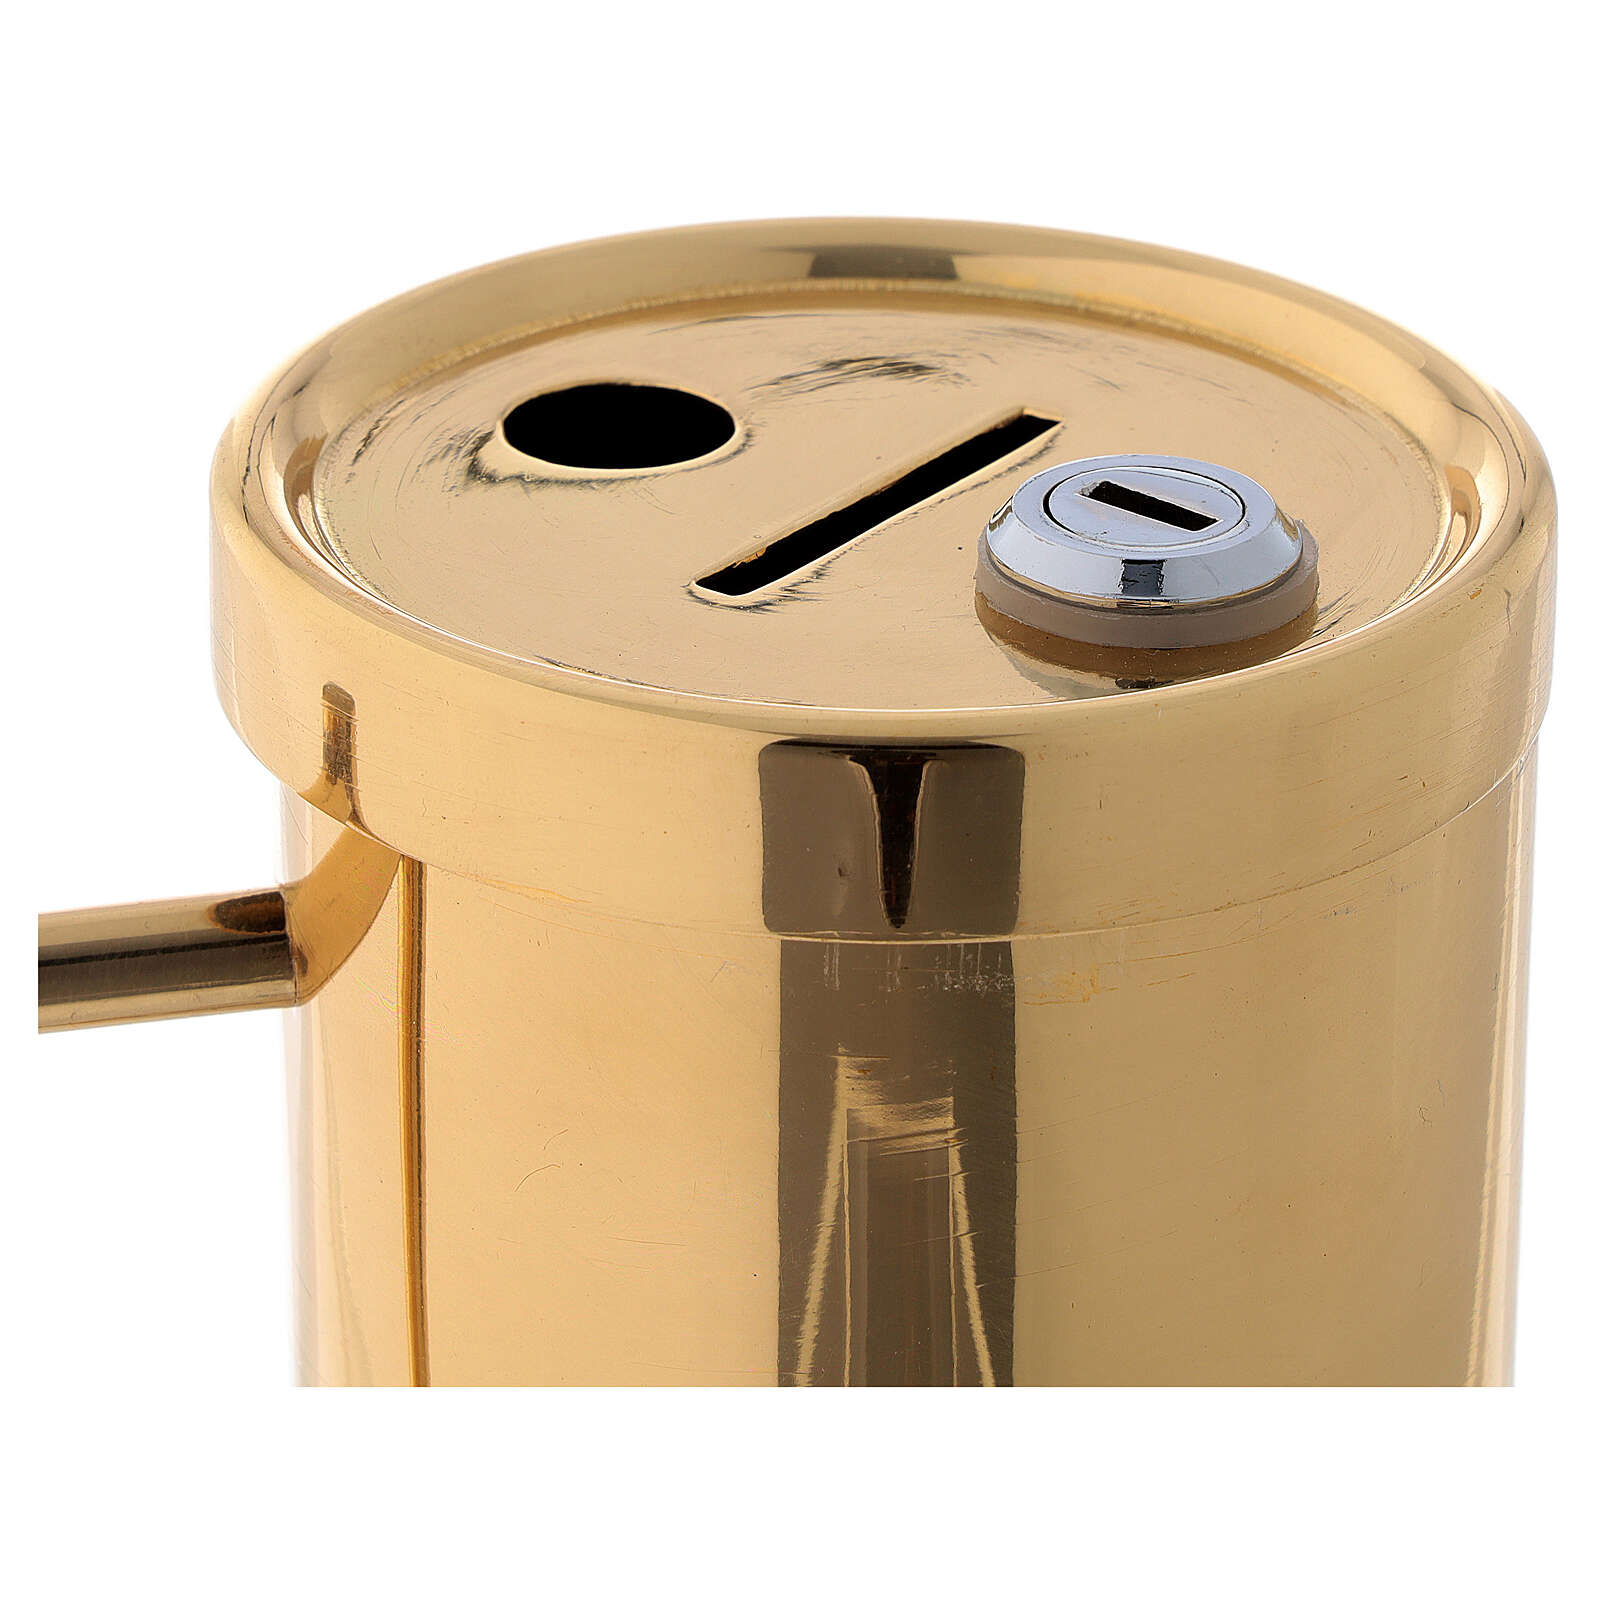 Gold plated brass collection box 6 in 3